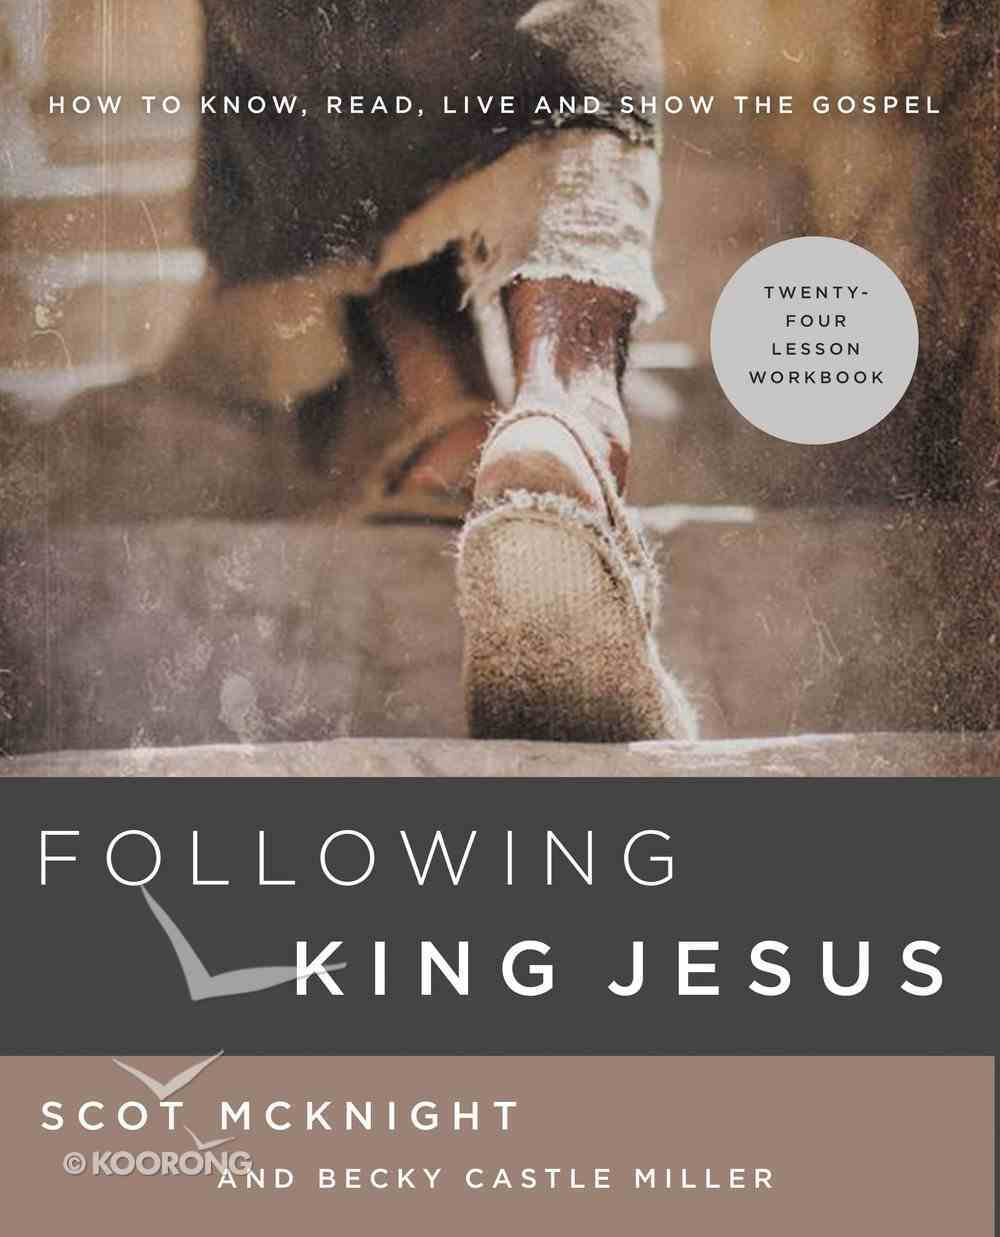 Following King Jesus: How to Know, Read, Live, and Show the Gospel (24 Lessons) Paperback